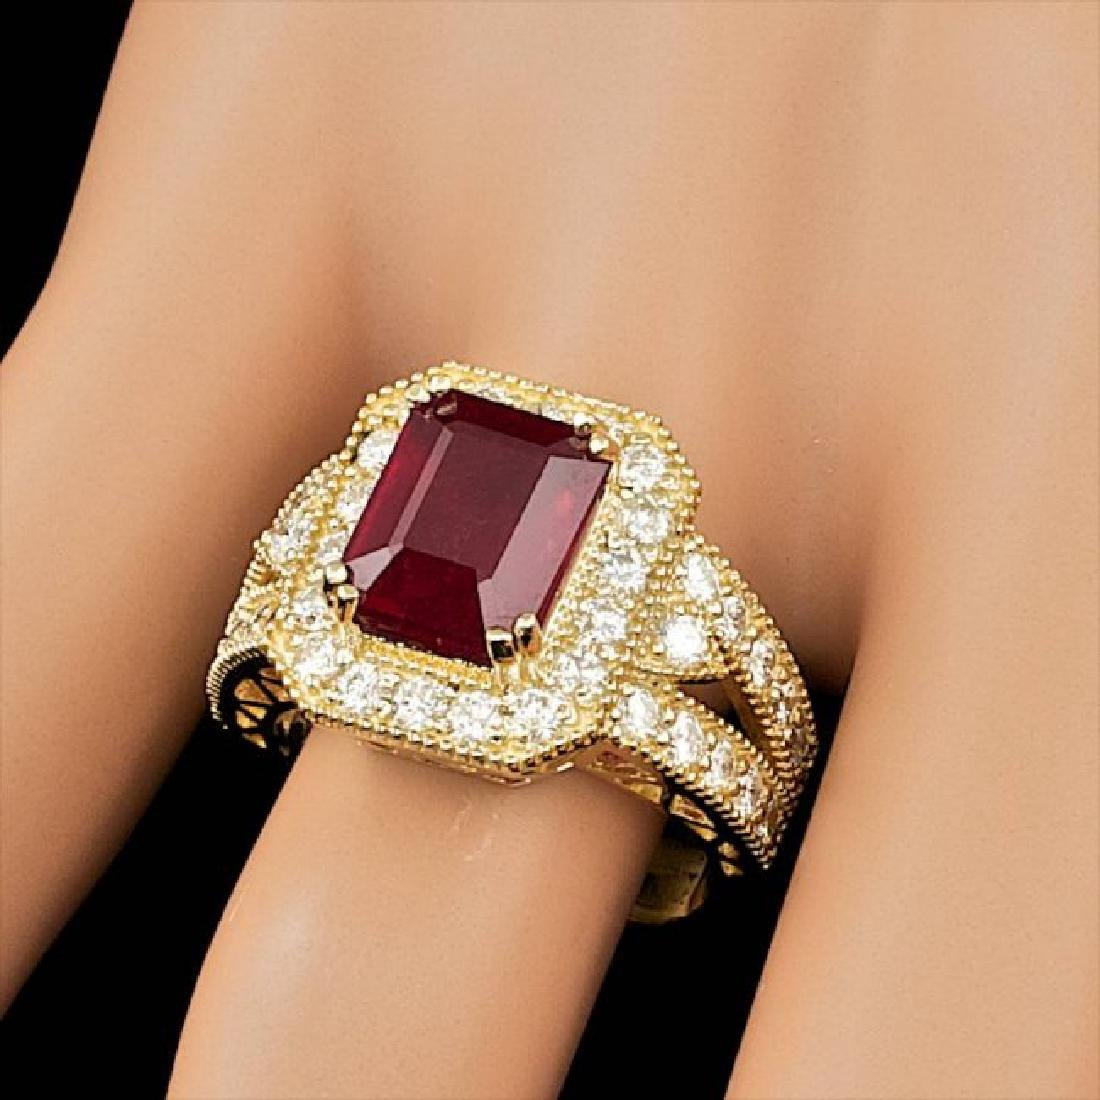 14k Yellow Gold 5.00ct Ruby 1.50ct Diamond Ring - 4